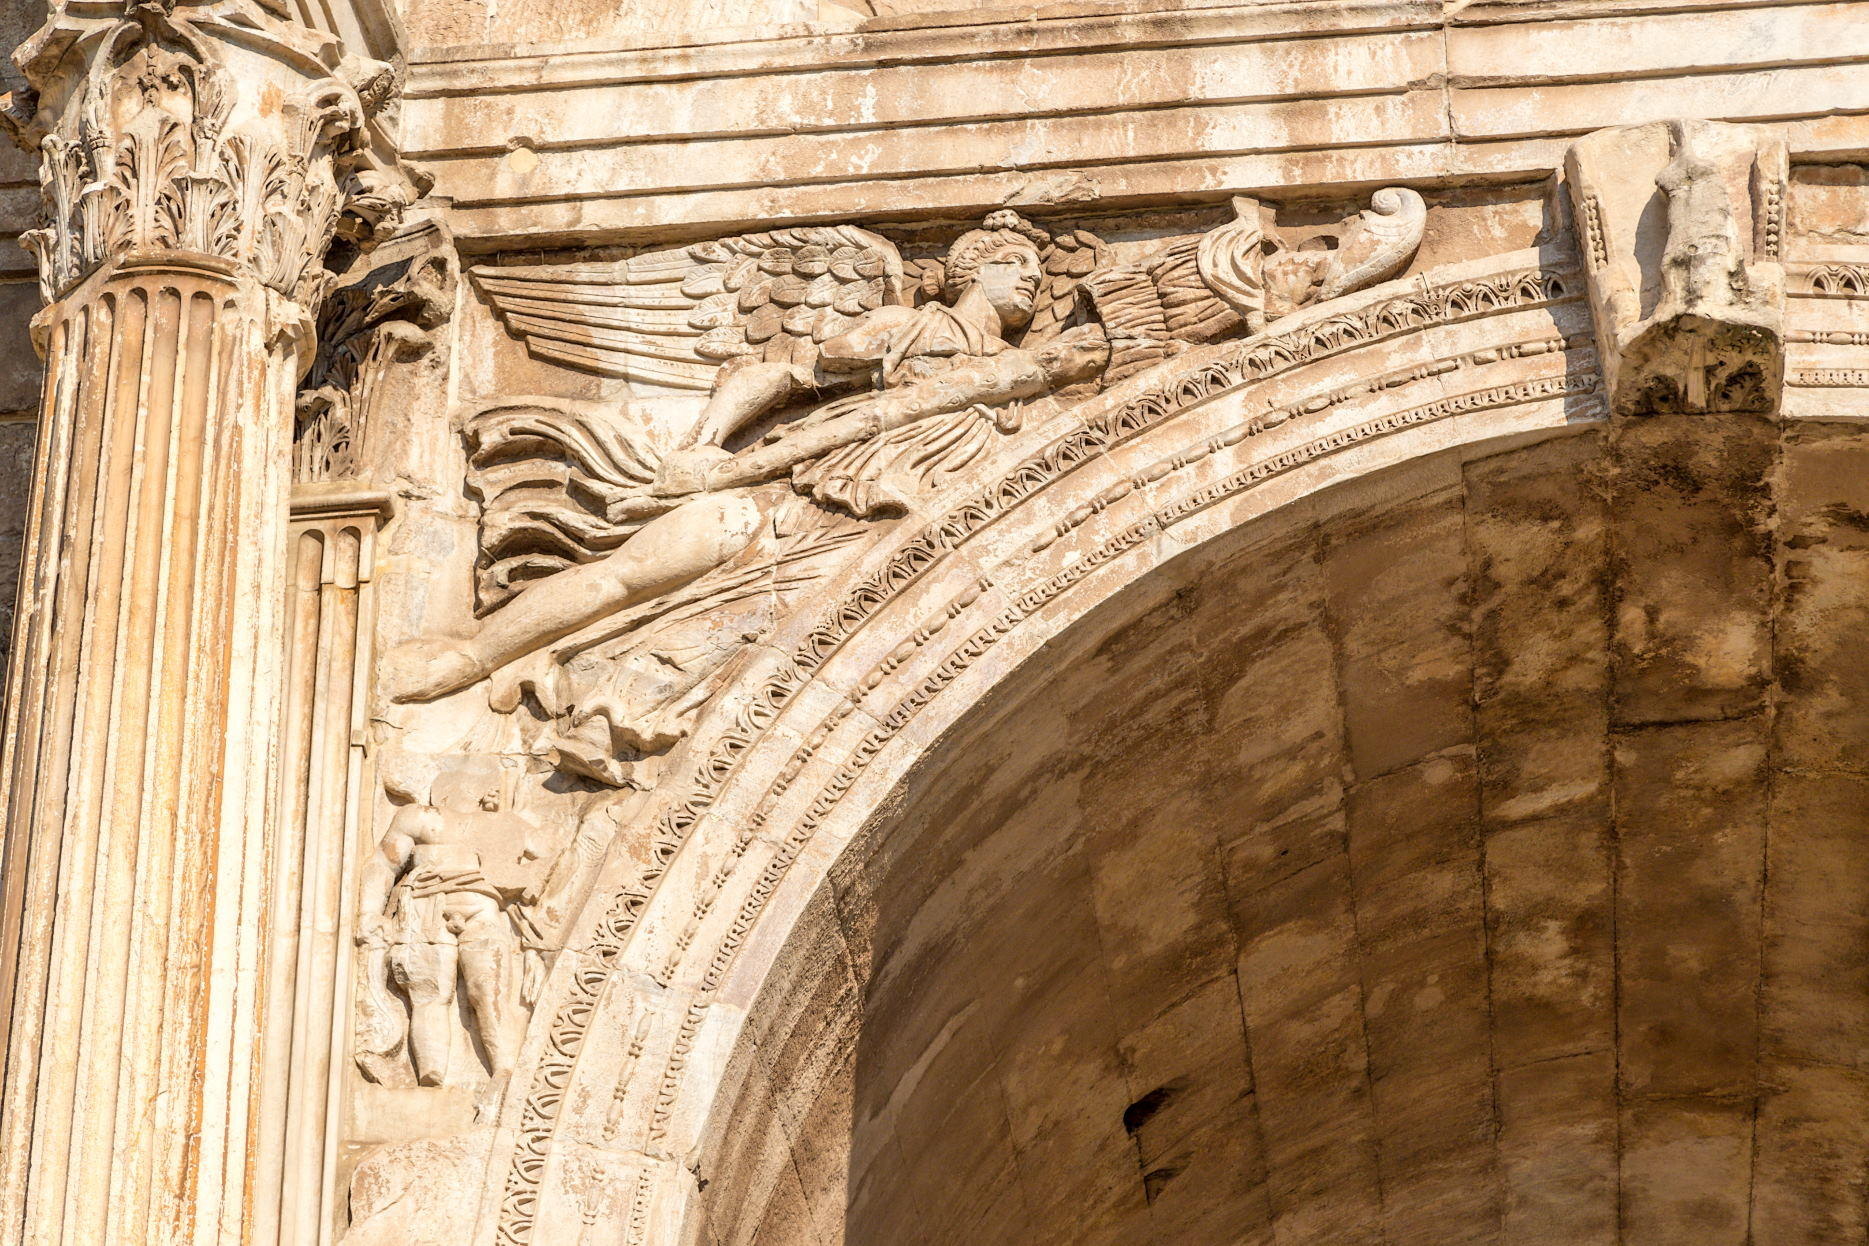 Inside of Arch of Constantine